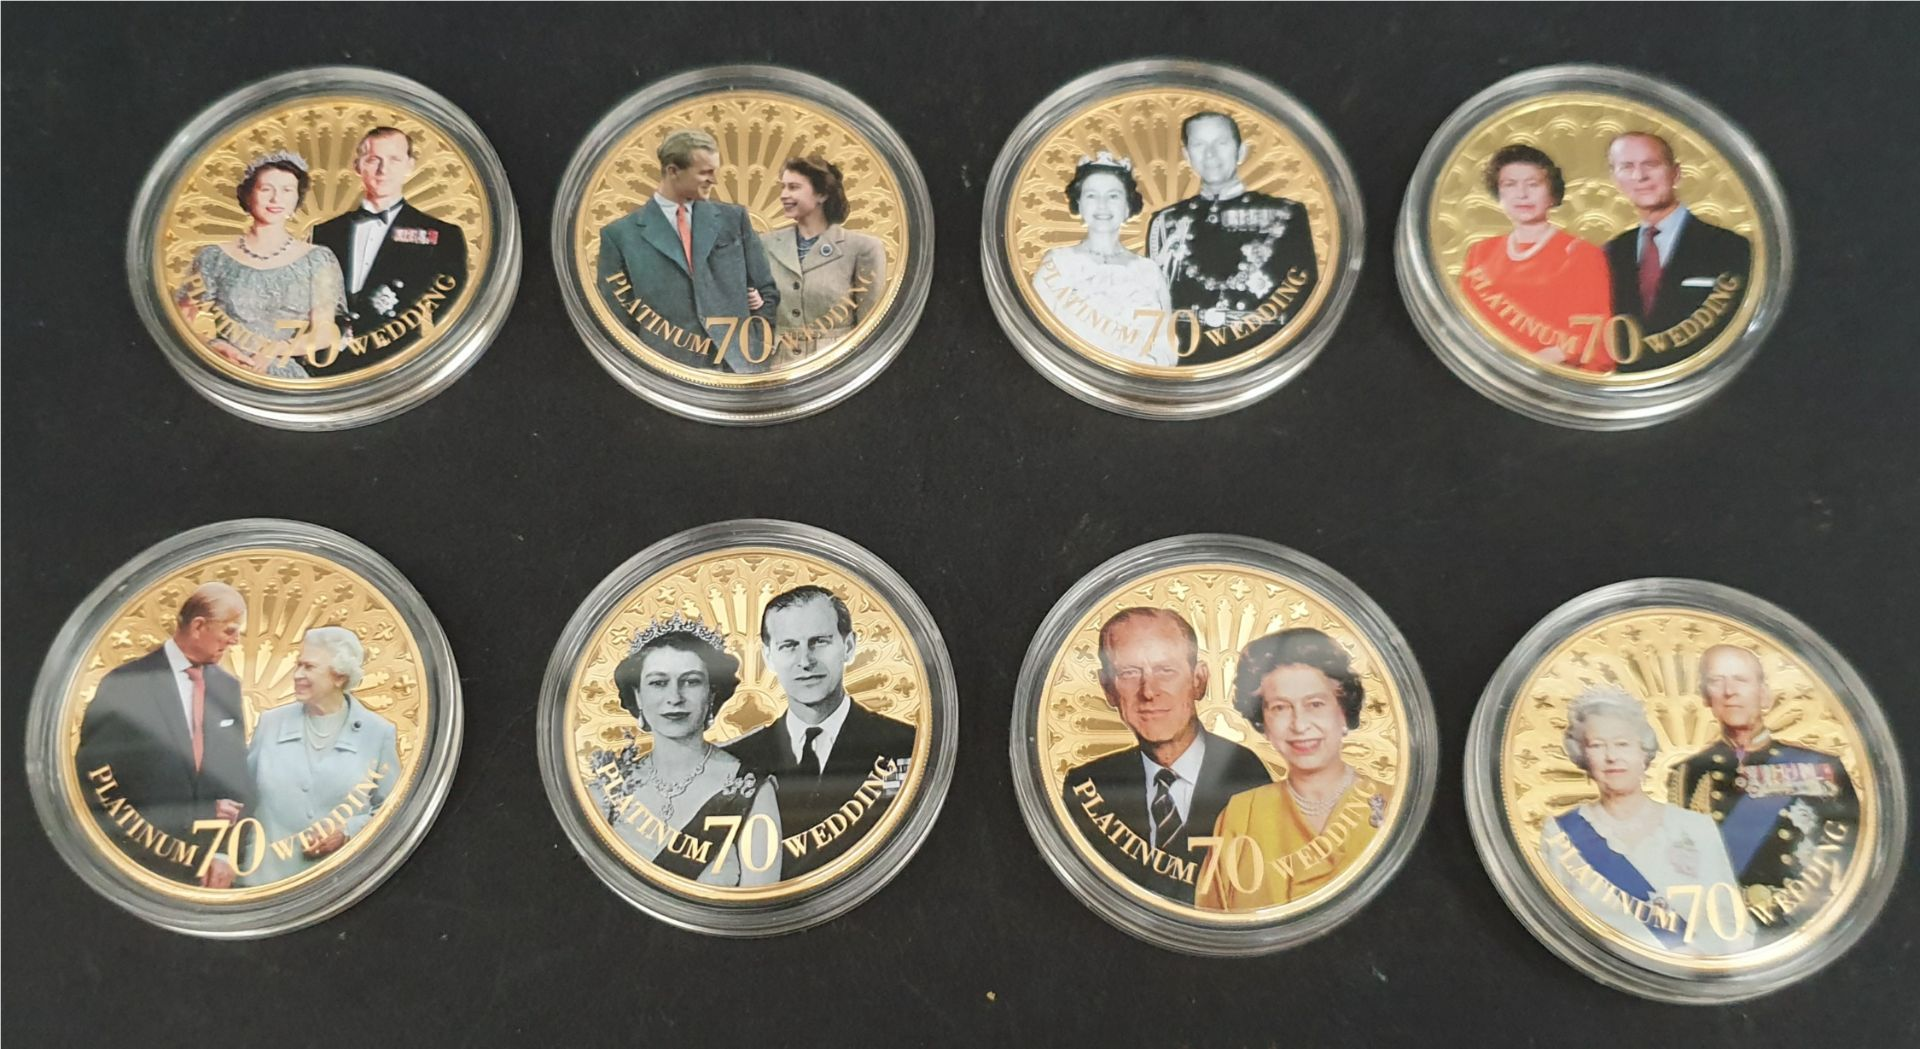 Lot 1 - Collectable Coins 8 x Elizabeth II 70th Wedding Anniversary